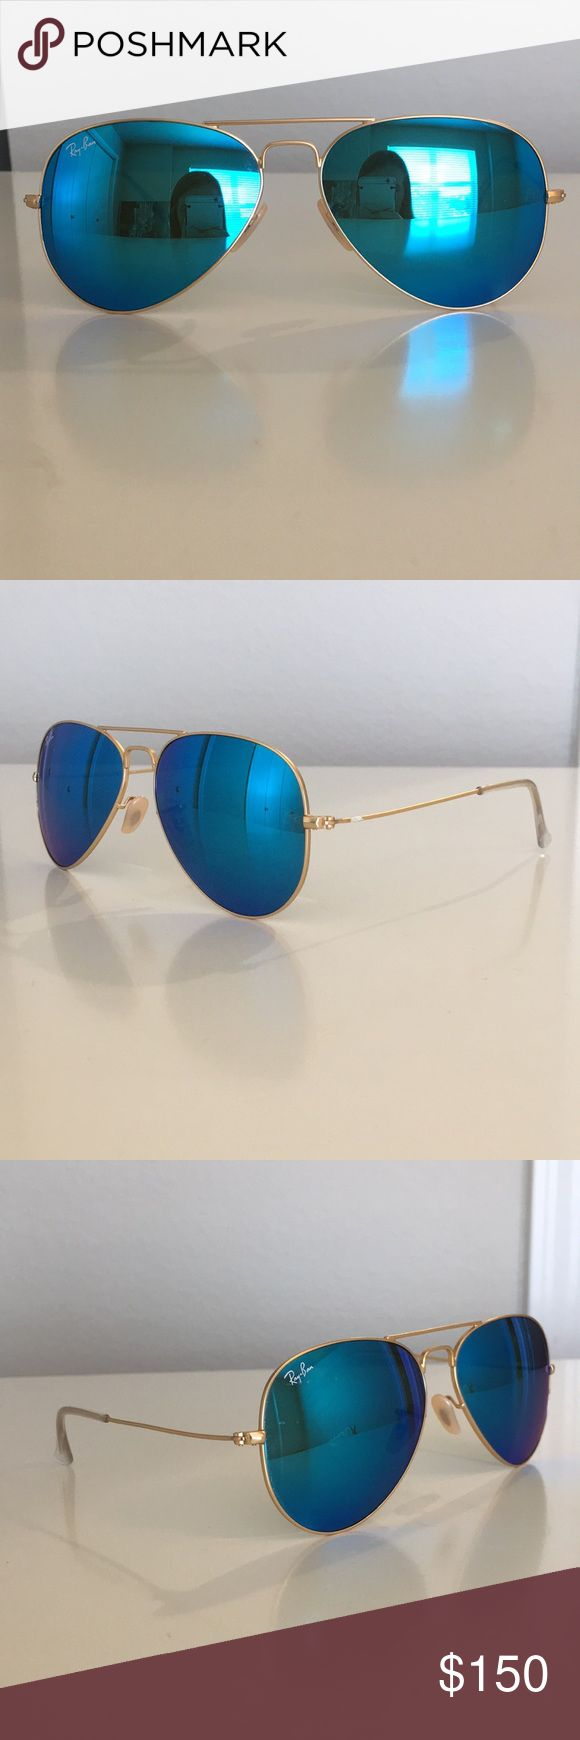 Ray Ban Aviator Sunglasses Authentic aviator Ray Ban sunglasses. Lenses are blue with gold trim Ray-Ban Accessories Sunglasses